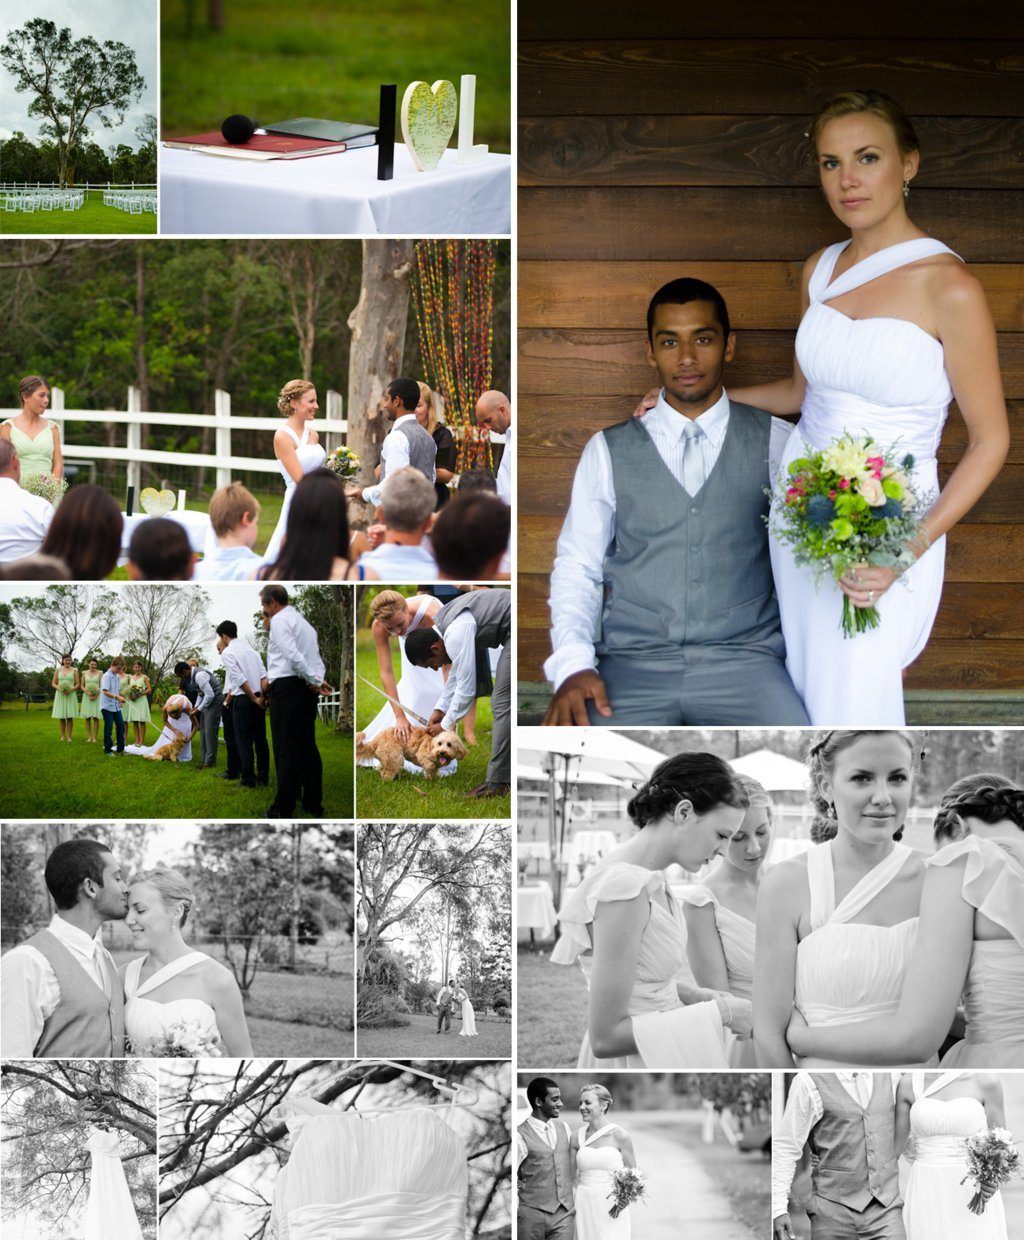 Romantic Weddings Simple: Romantic Outdoor Wedding Simple Ceremony